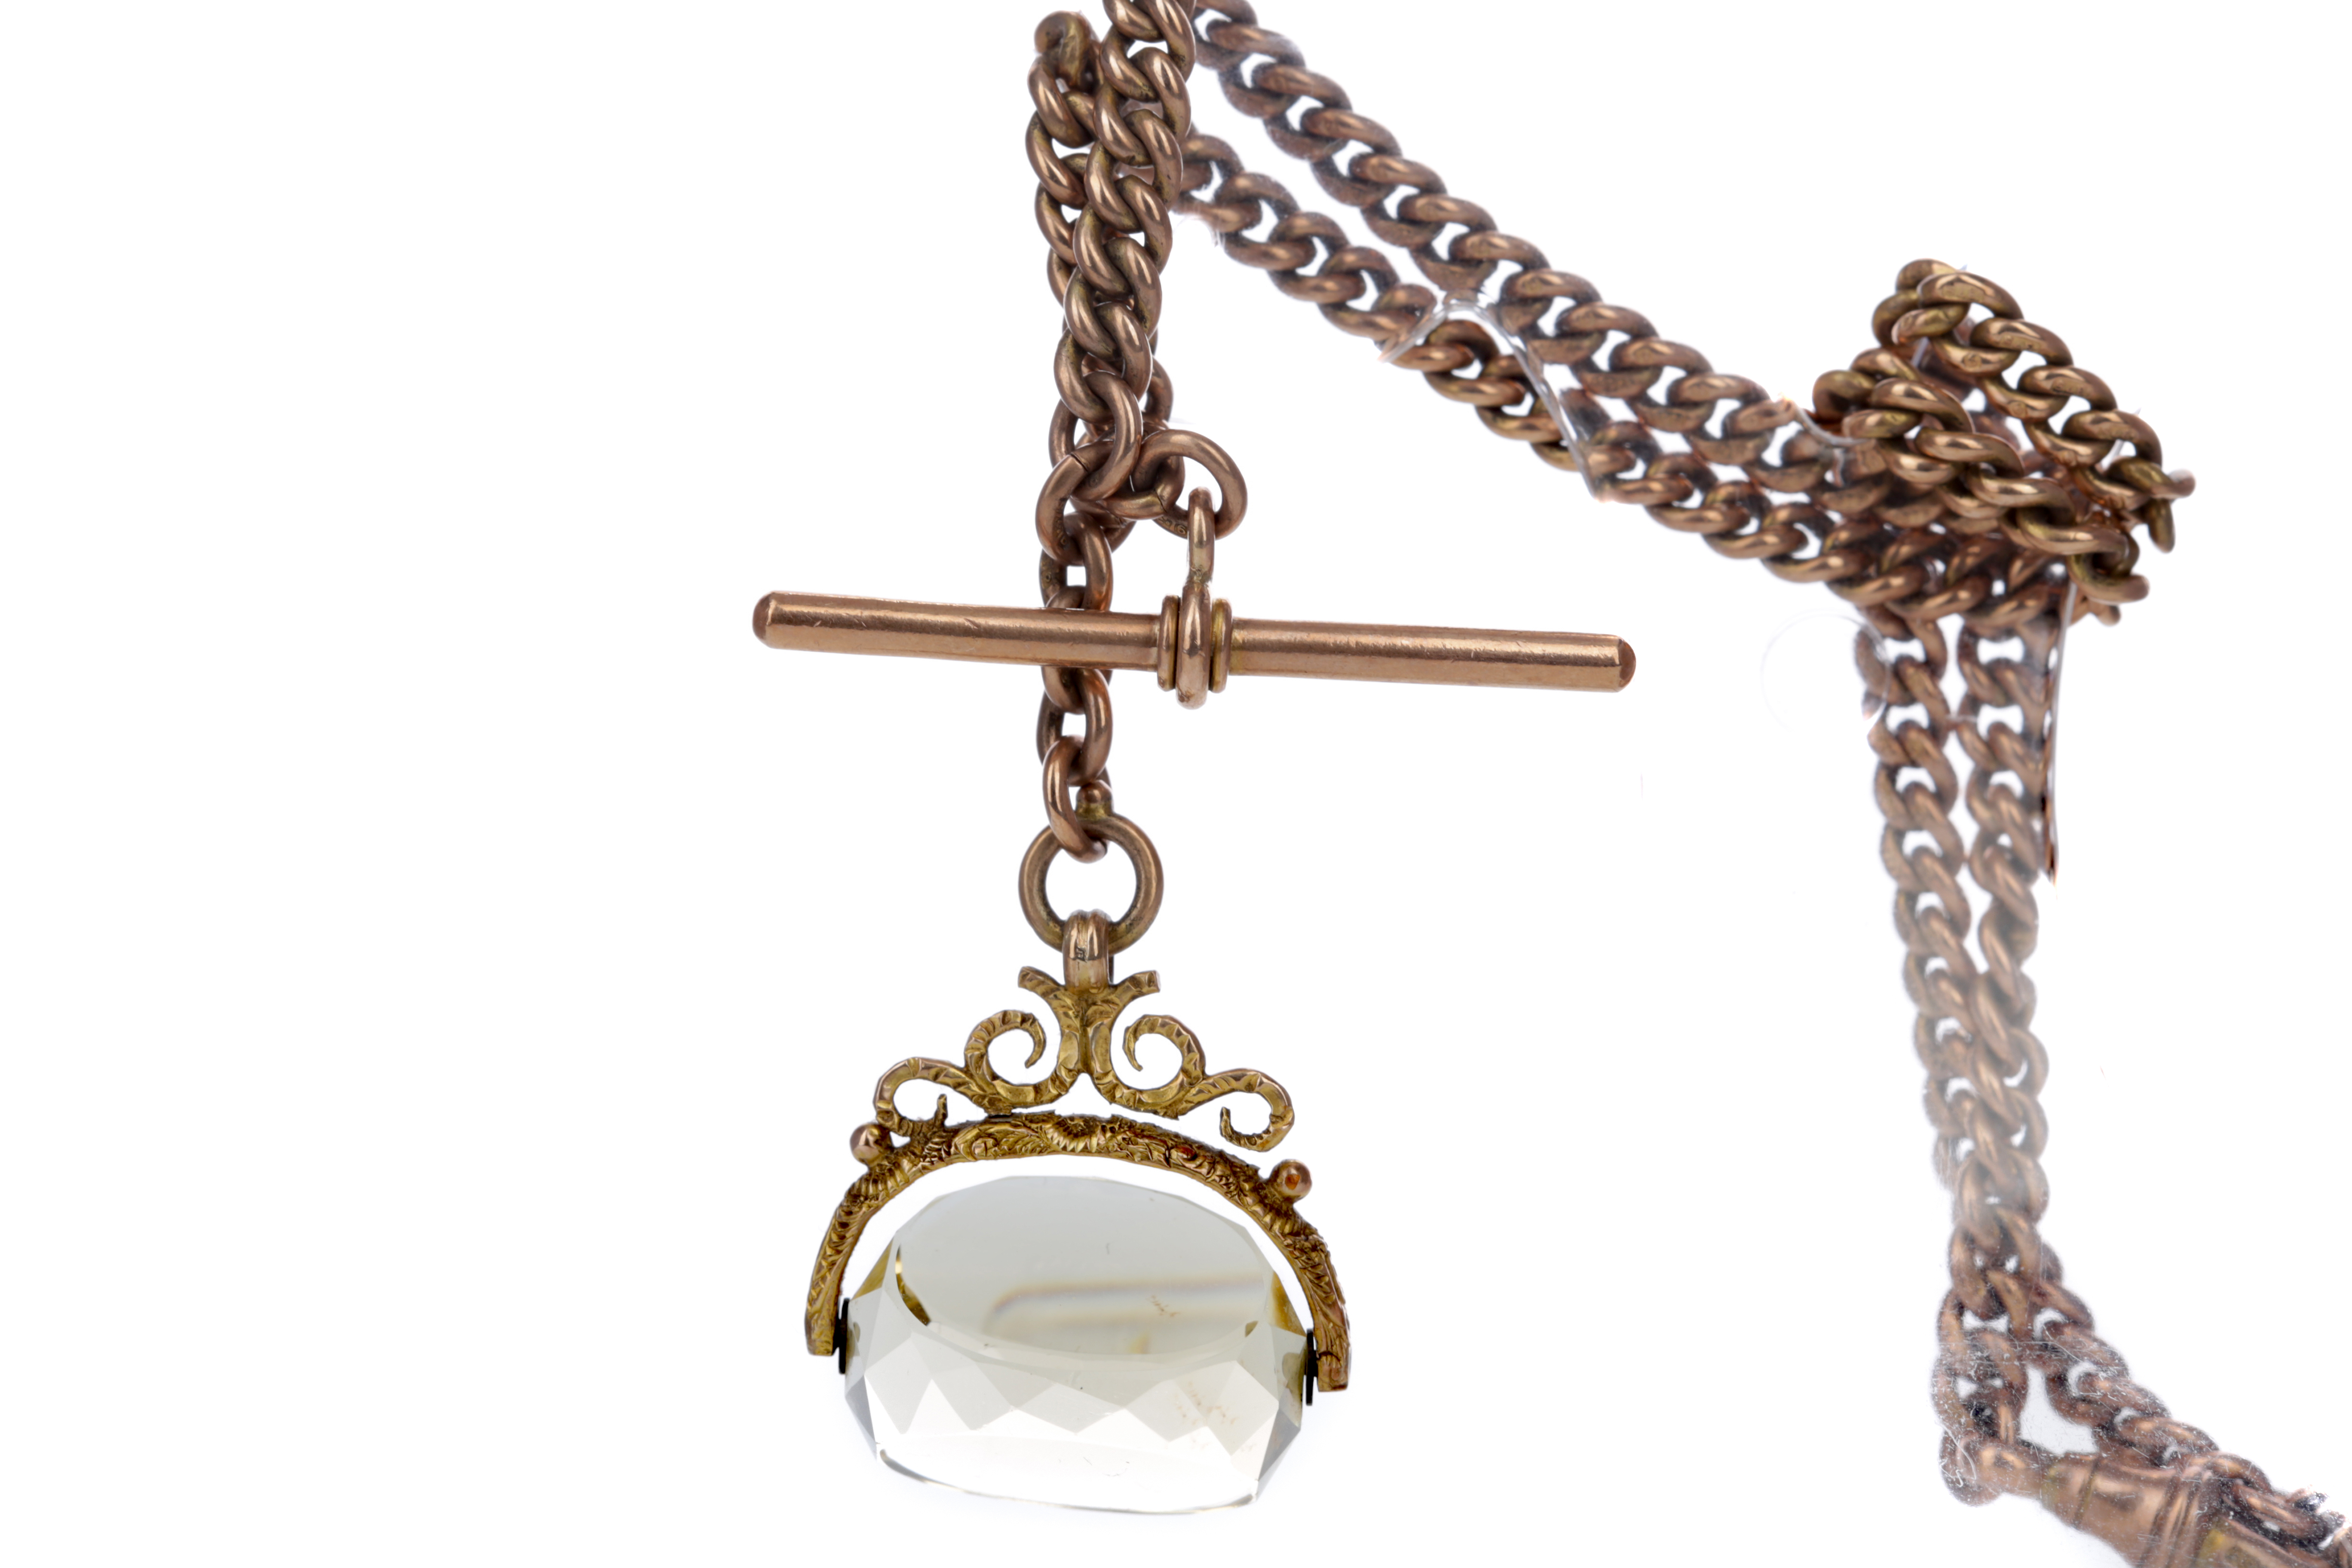 A DOUBLE ALBERT CHAIN WITH SWIVEL FOB